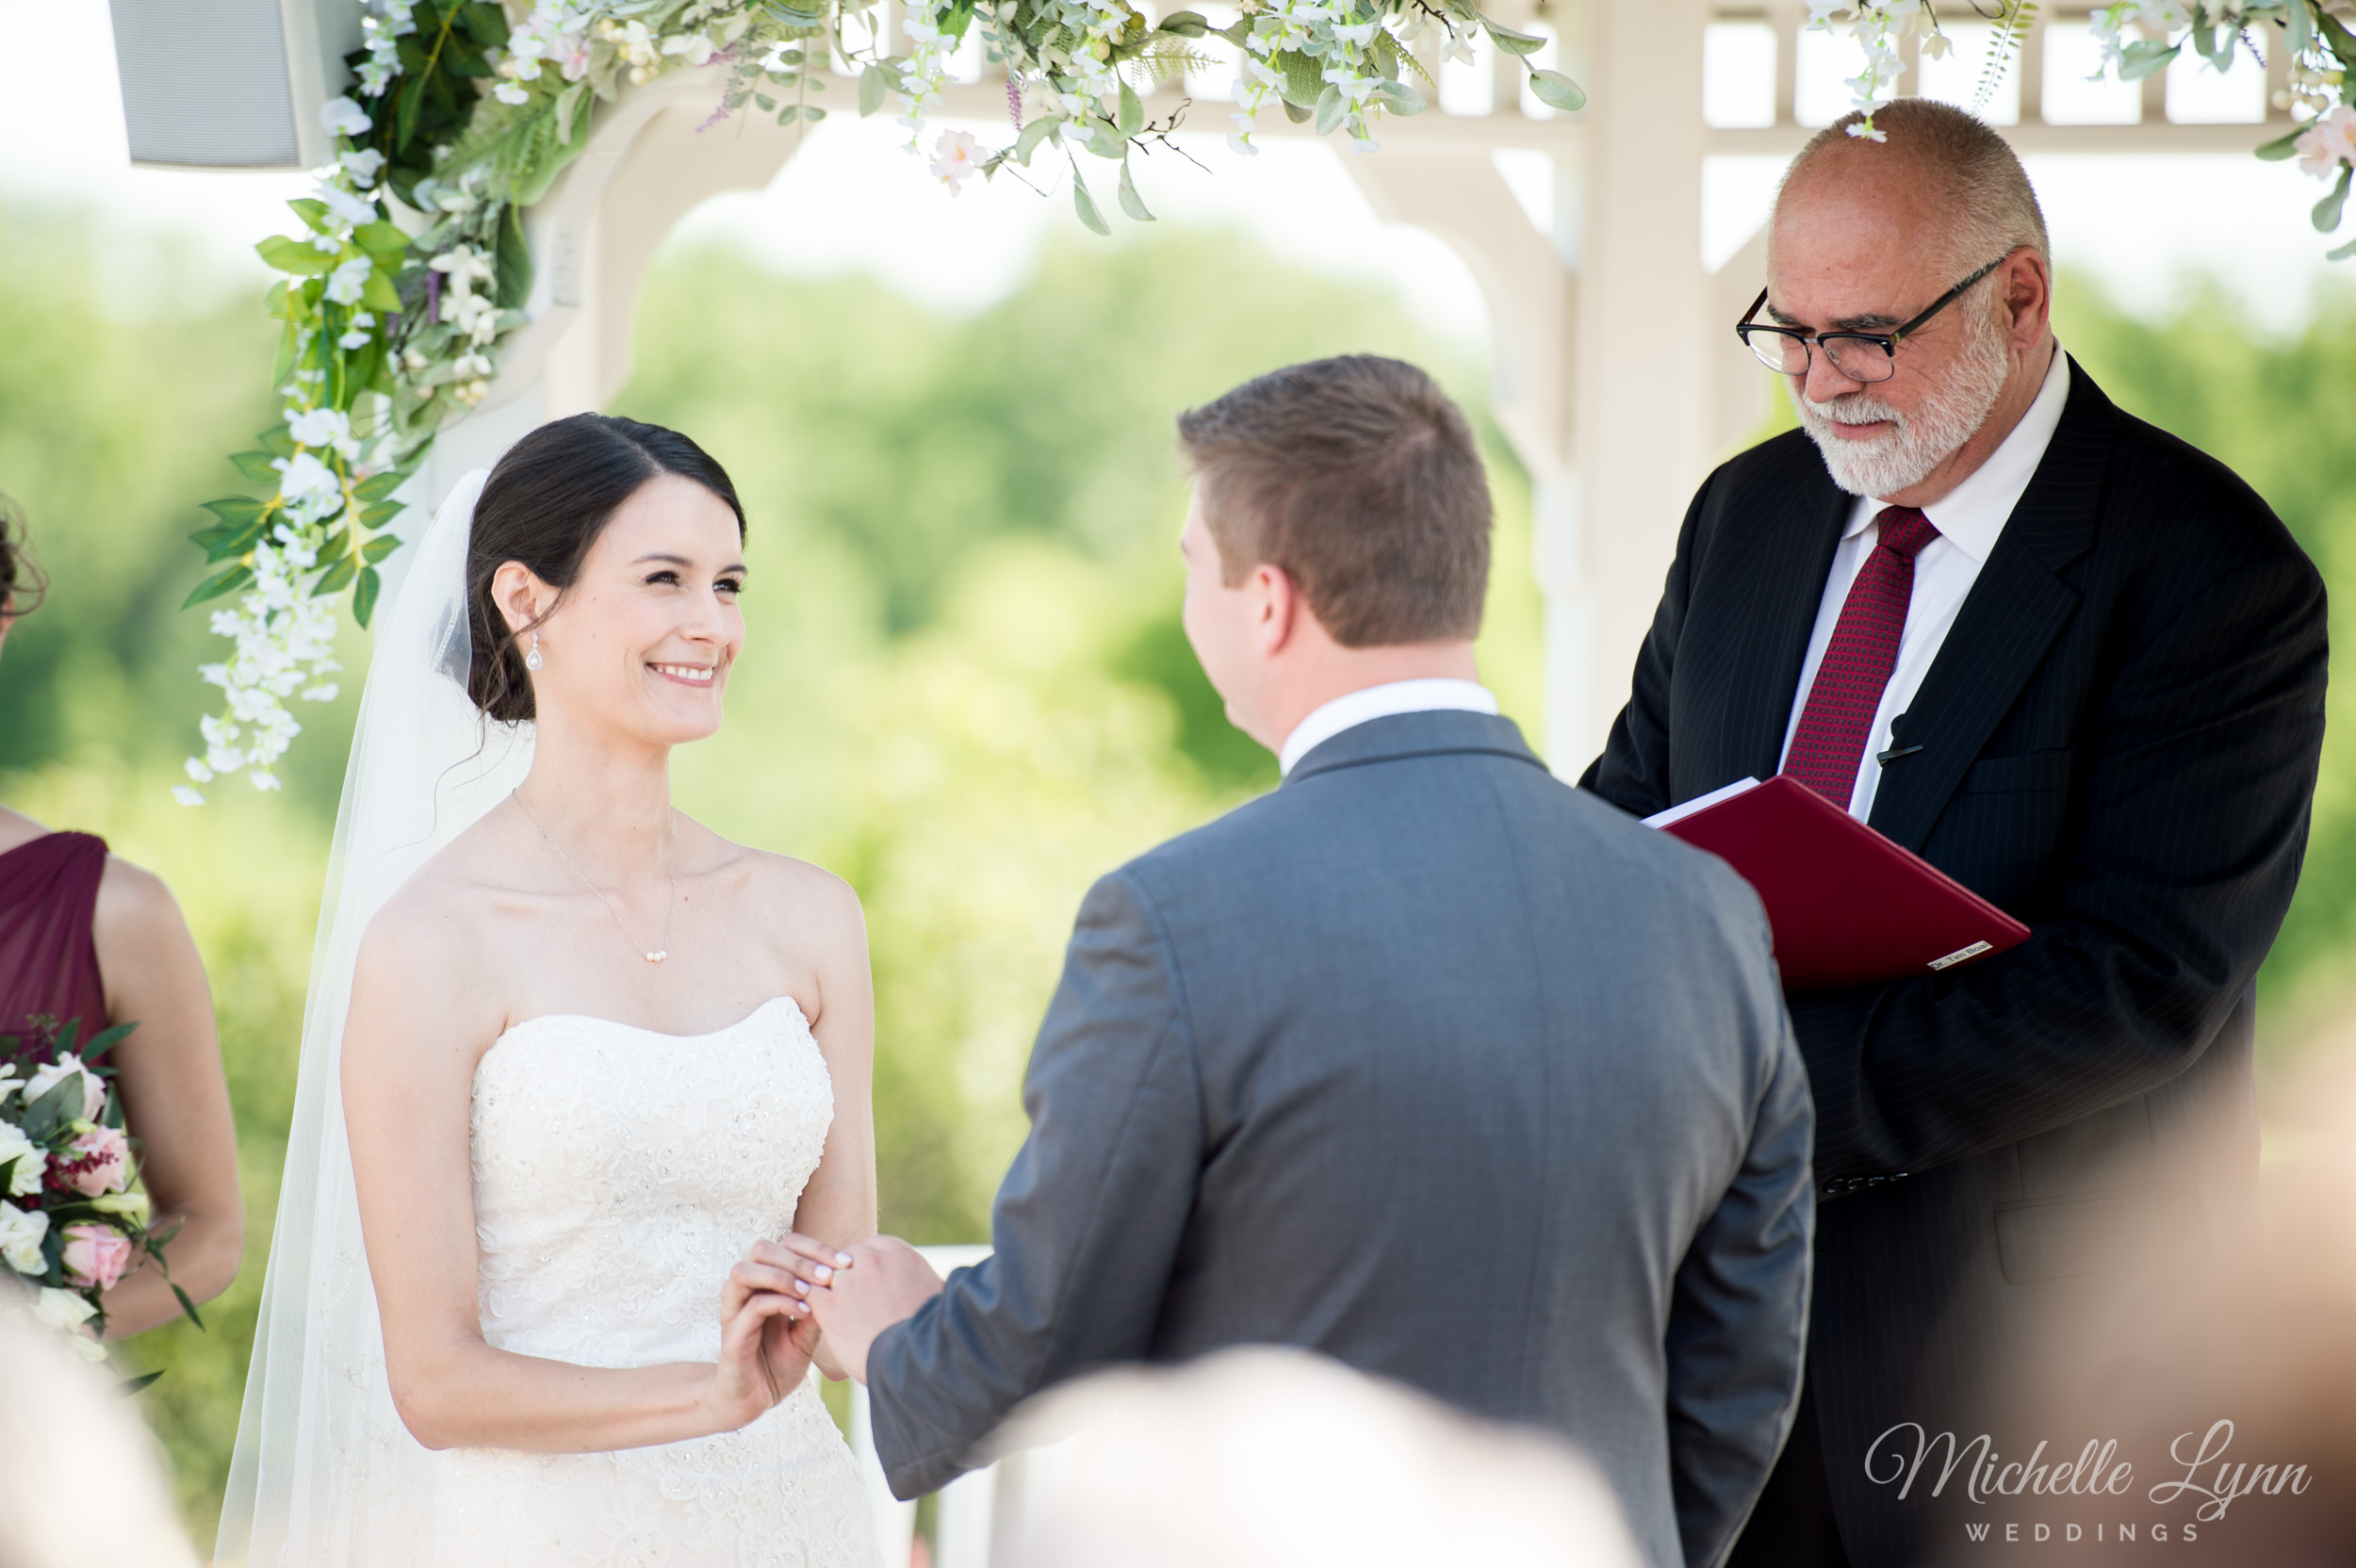 mlw-loft-at-sweet-water-country-club-wedding-photography-48.jpg